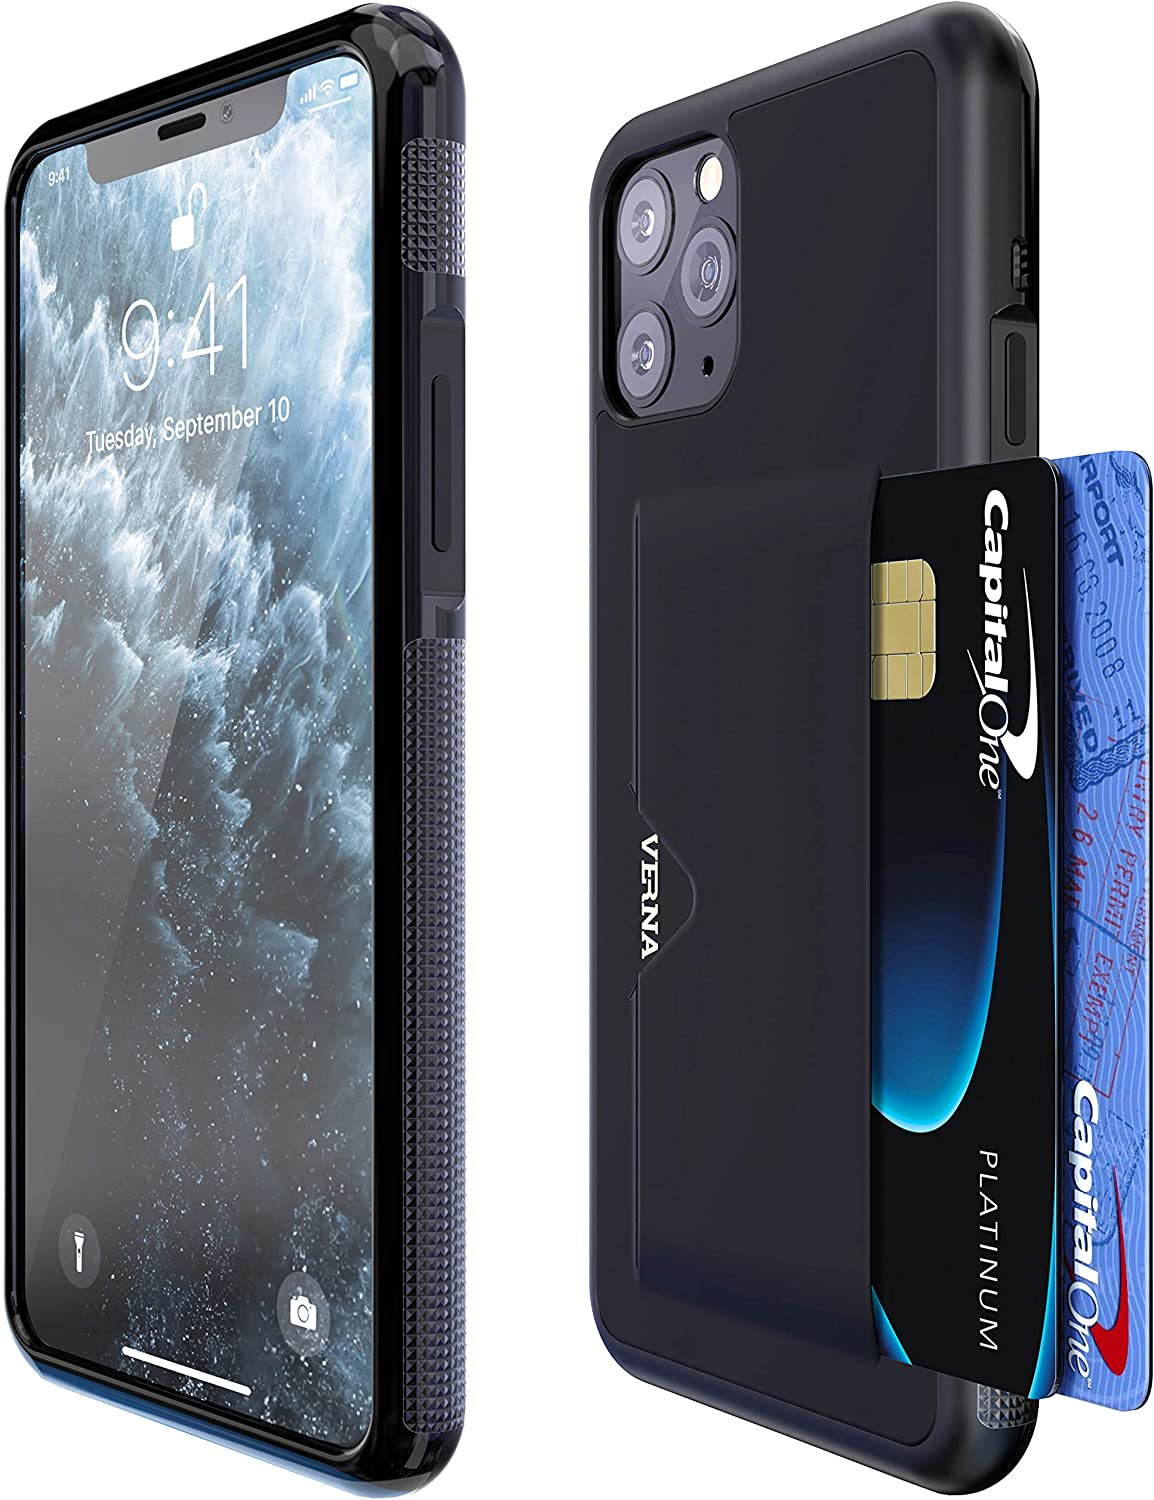 Verna iPhone 11 Pro Max Case   Slim PU Leather Case   Card Holder Slot   Wireless Charging   Compatible with iPhone 11 Pro Max - Black